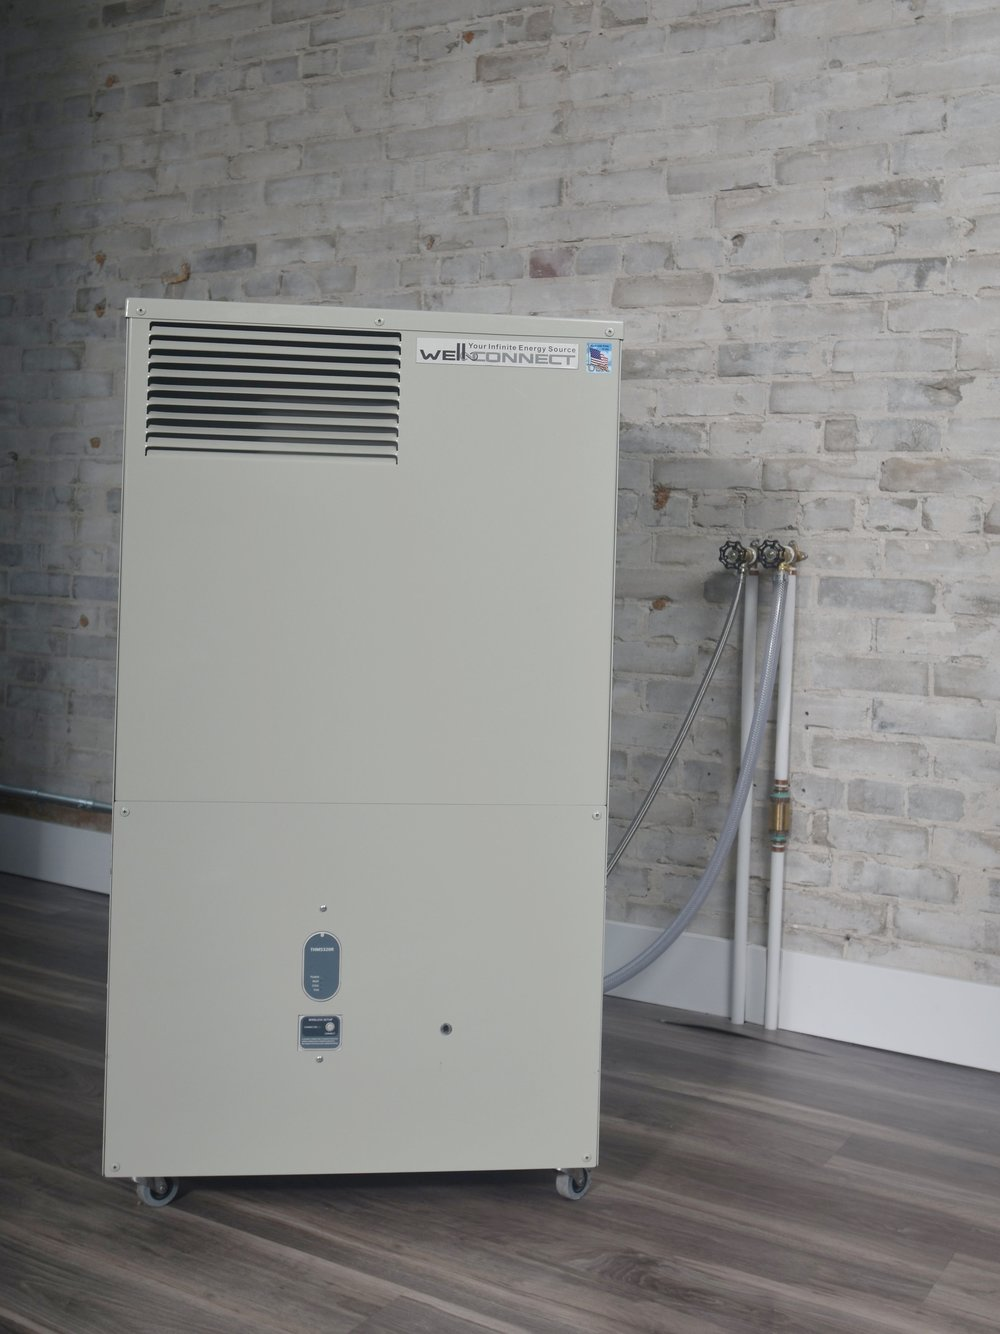 Stand Alone (Ductless) - The simplest installation option, the stand alone configuration is best suited to small cottages, workshops, and other one-room applications.